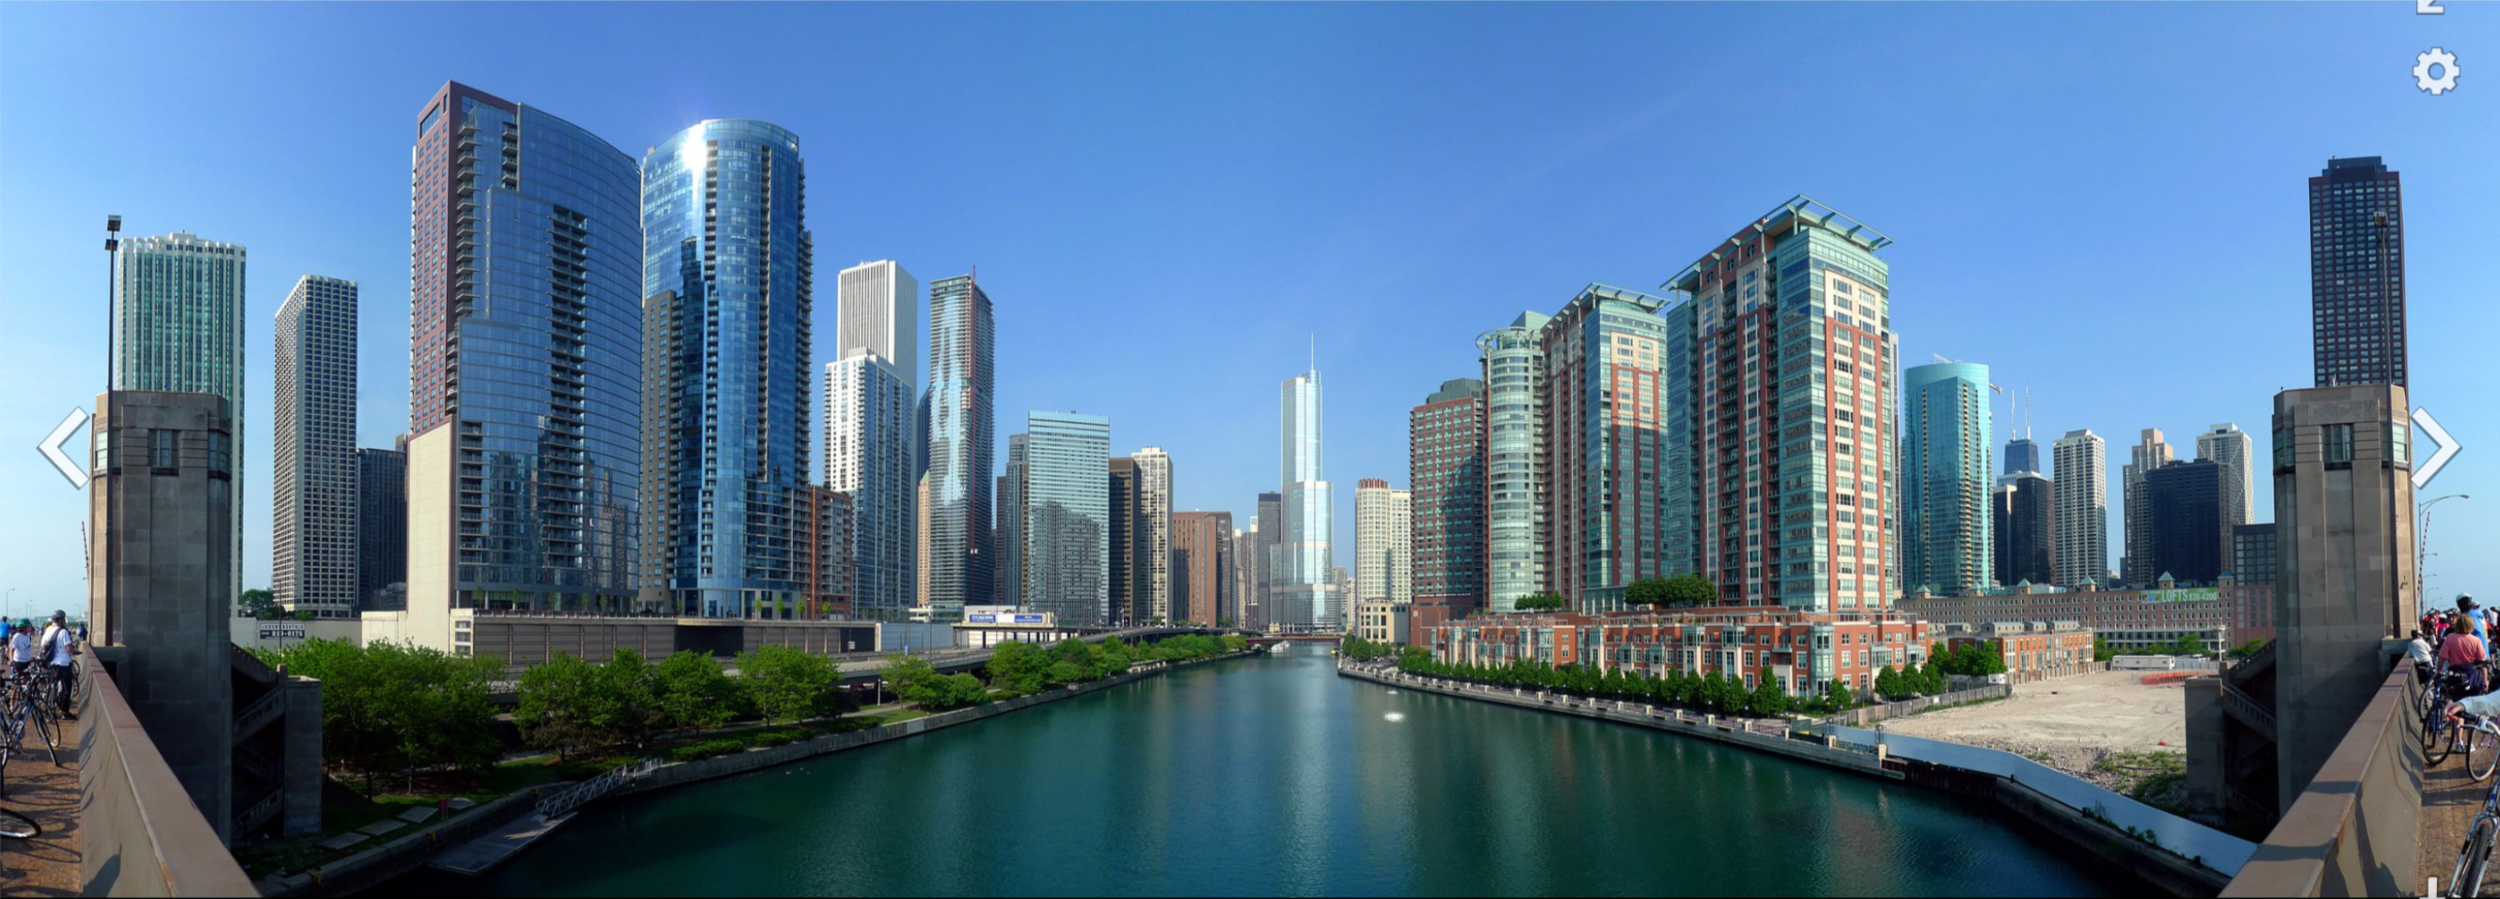 The  Chicago River  is the south border of the  Near North Side  (right) and the north border of the  Loop ; the Loop's  Near East Side  is to the left in this picture.